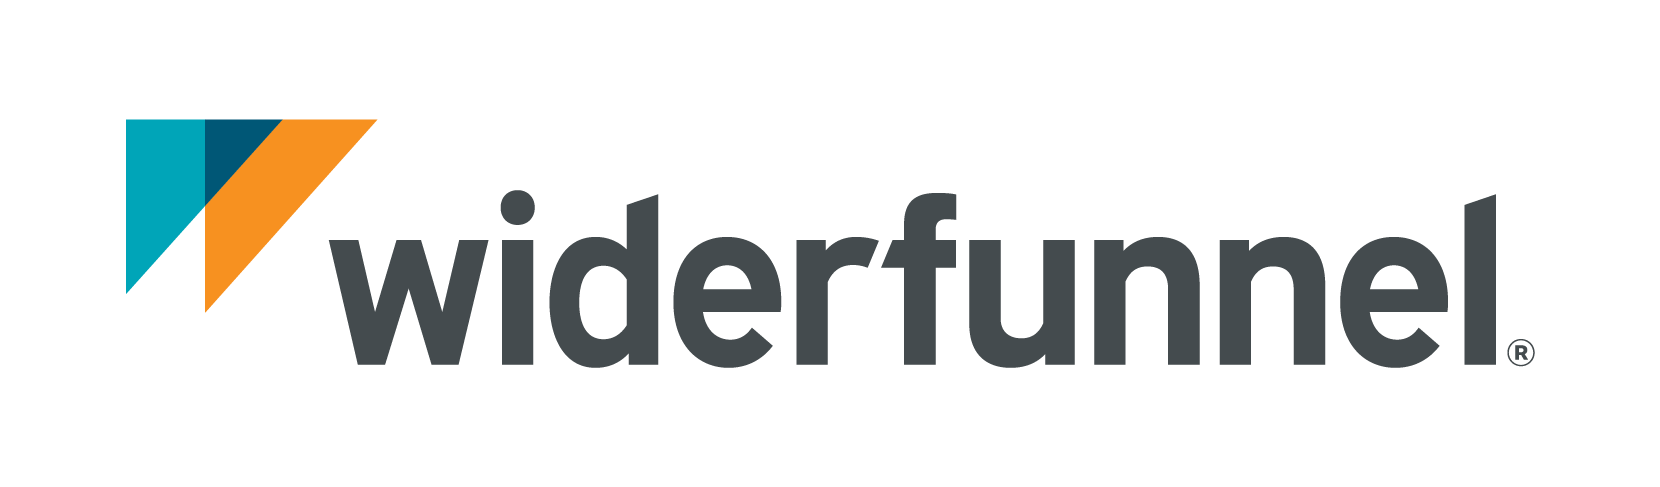 Widerfunnel logo